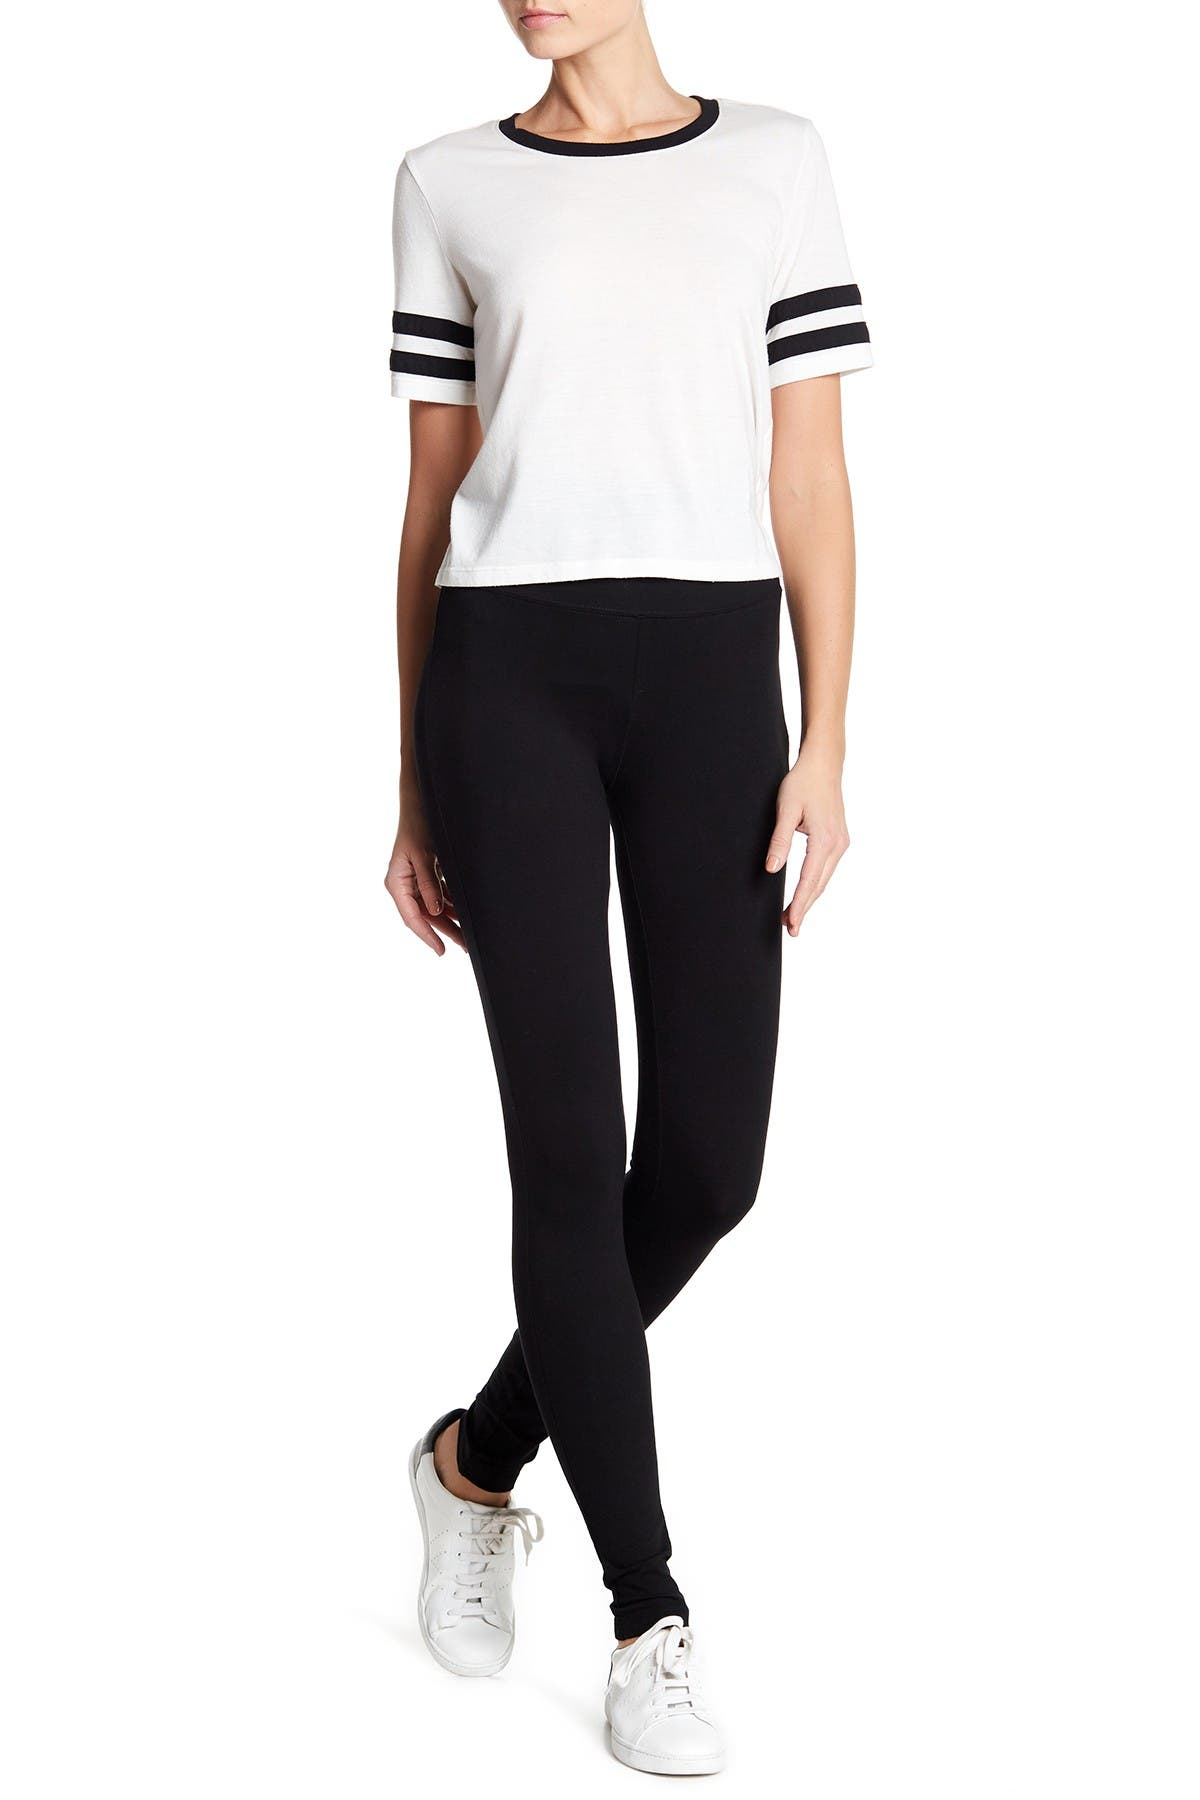 Image of Abound High Waist Leggings